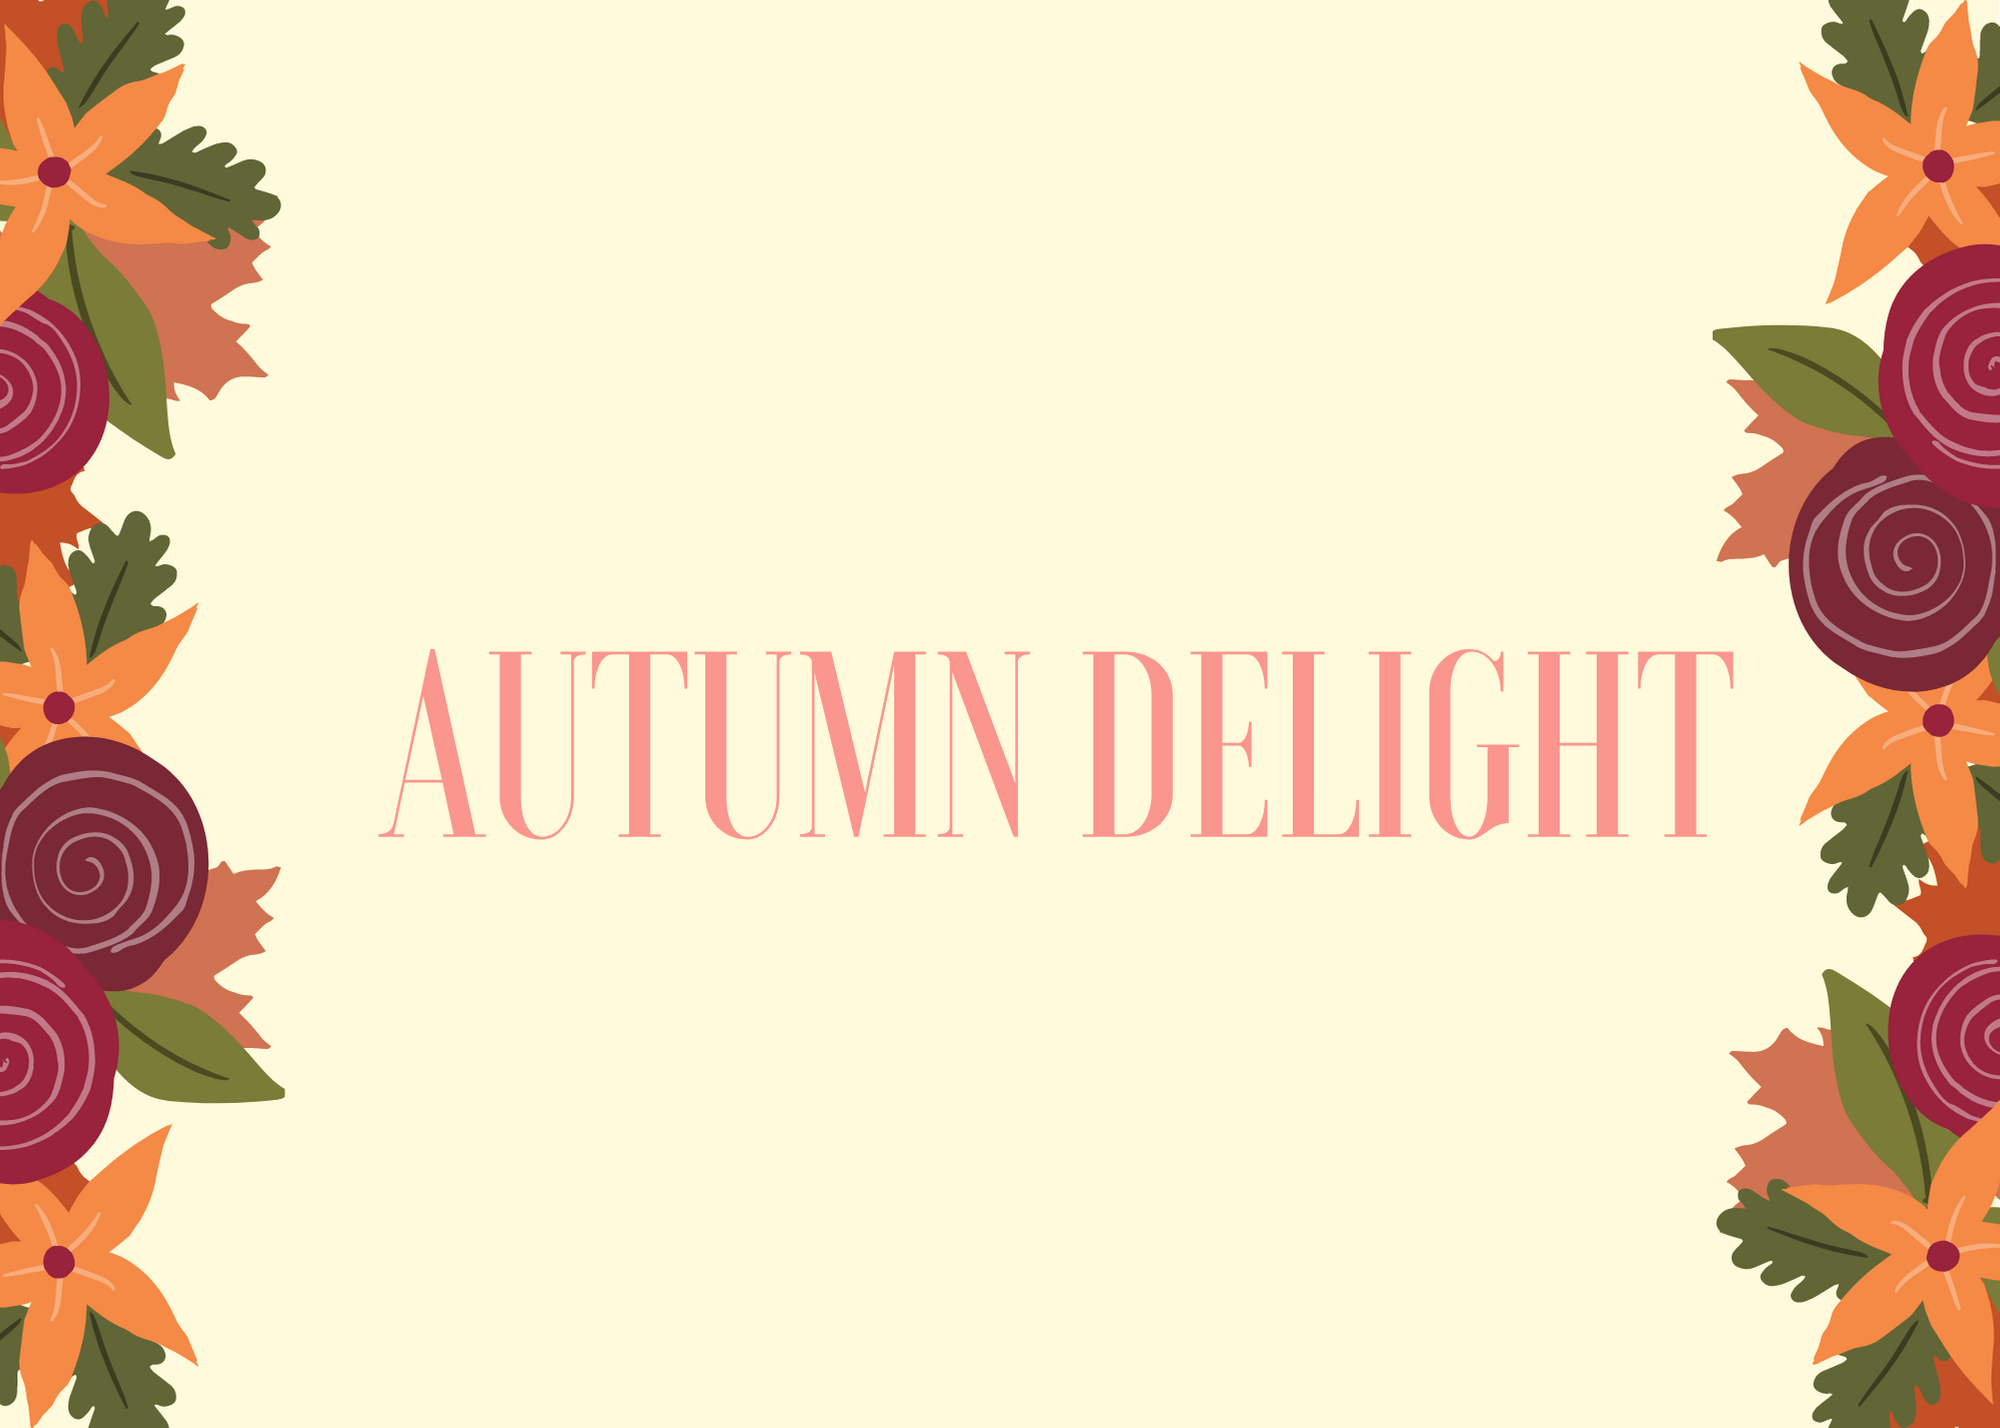 Funny Fall Instagram Caption About Autumn Delight